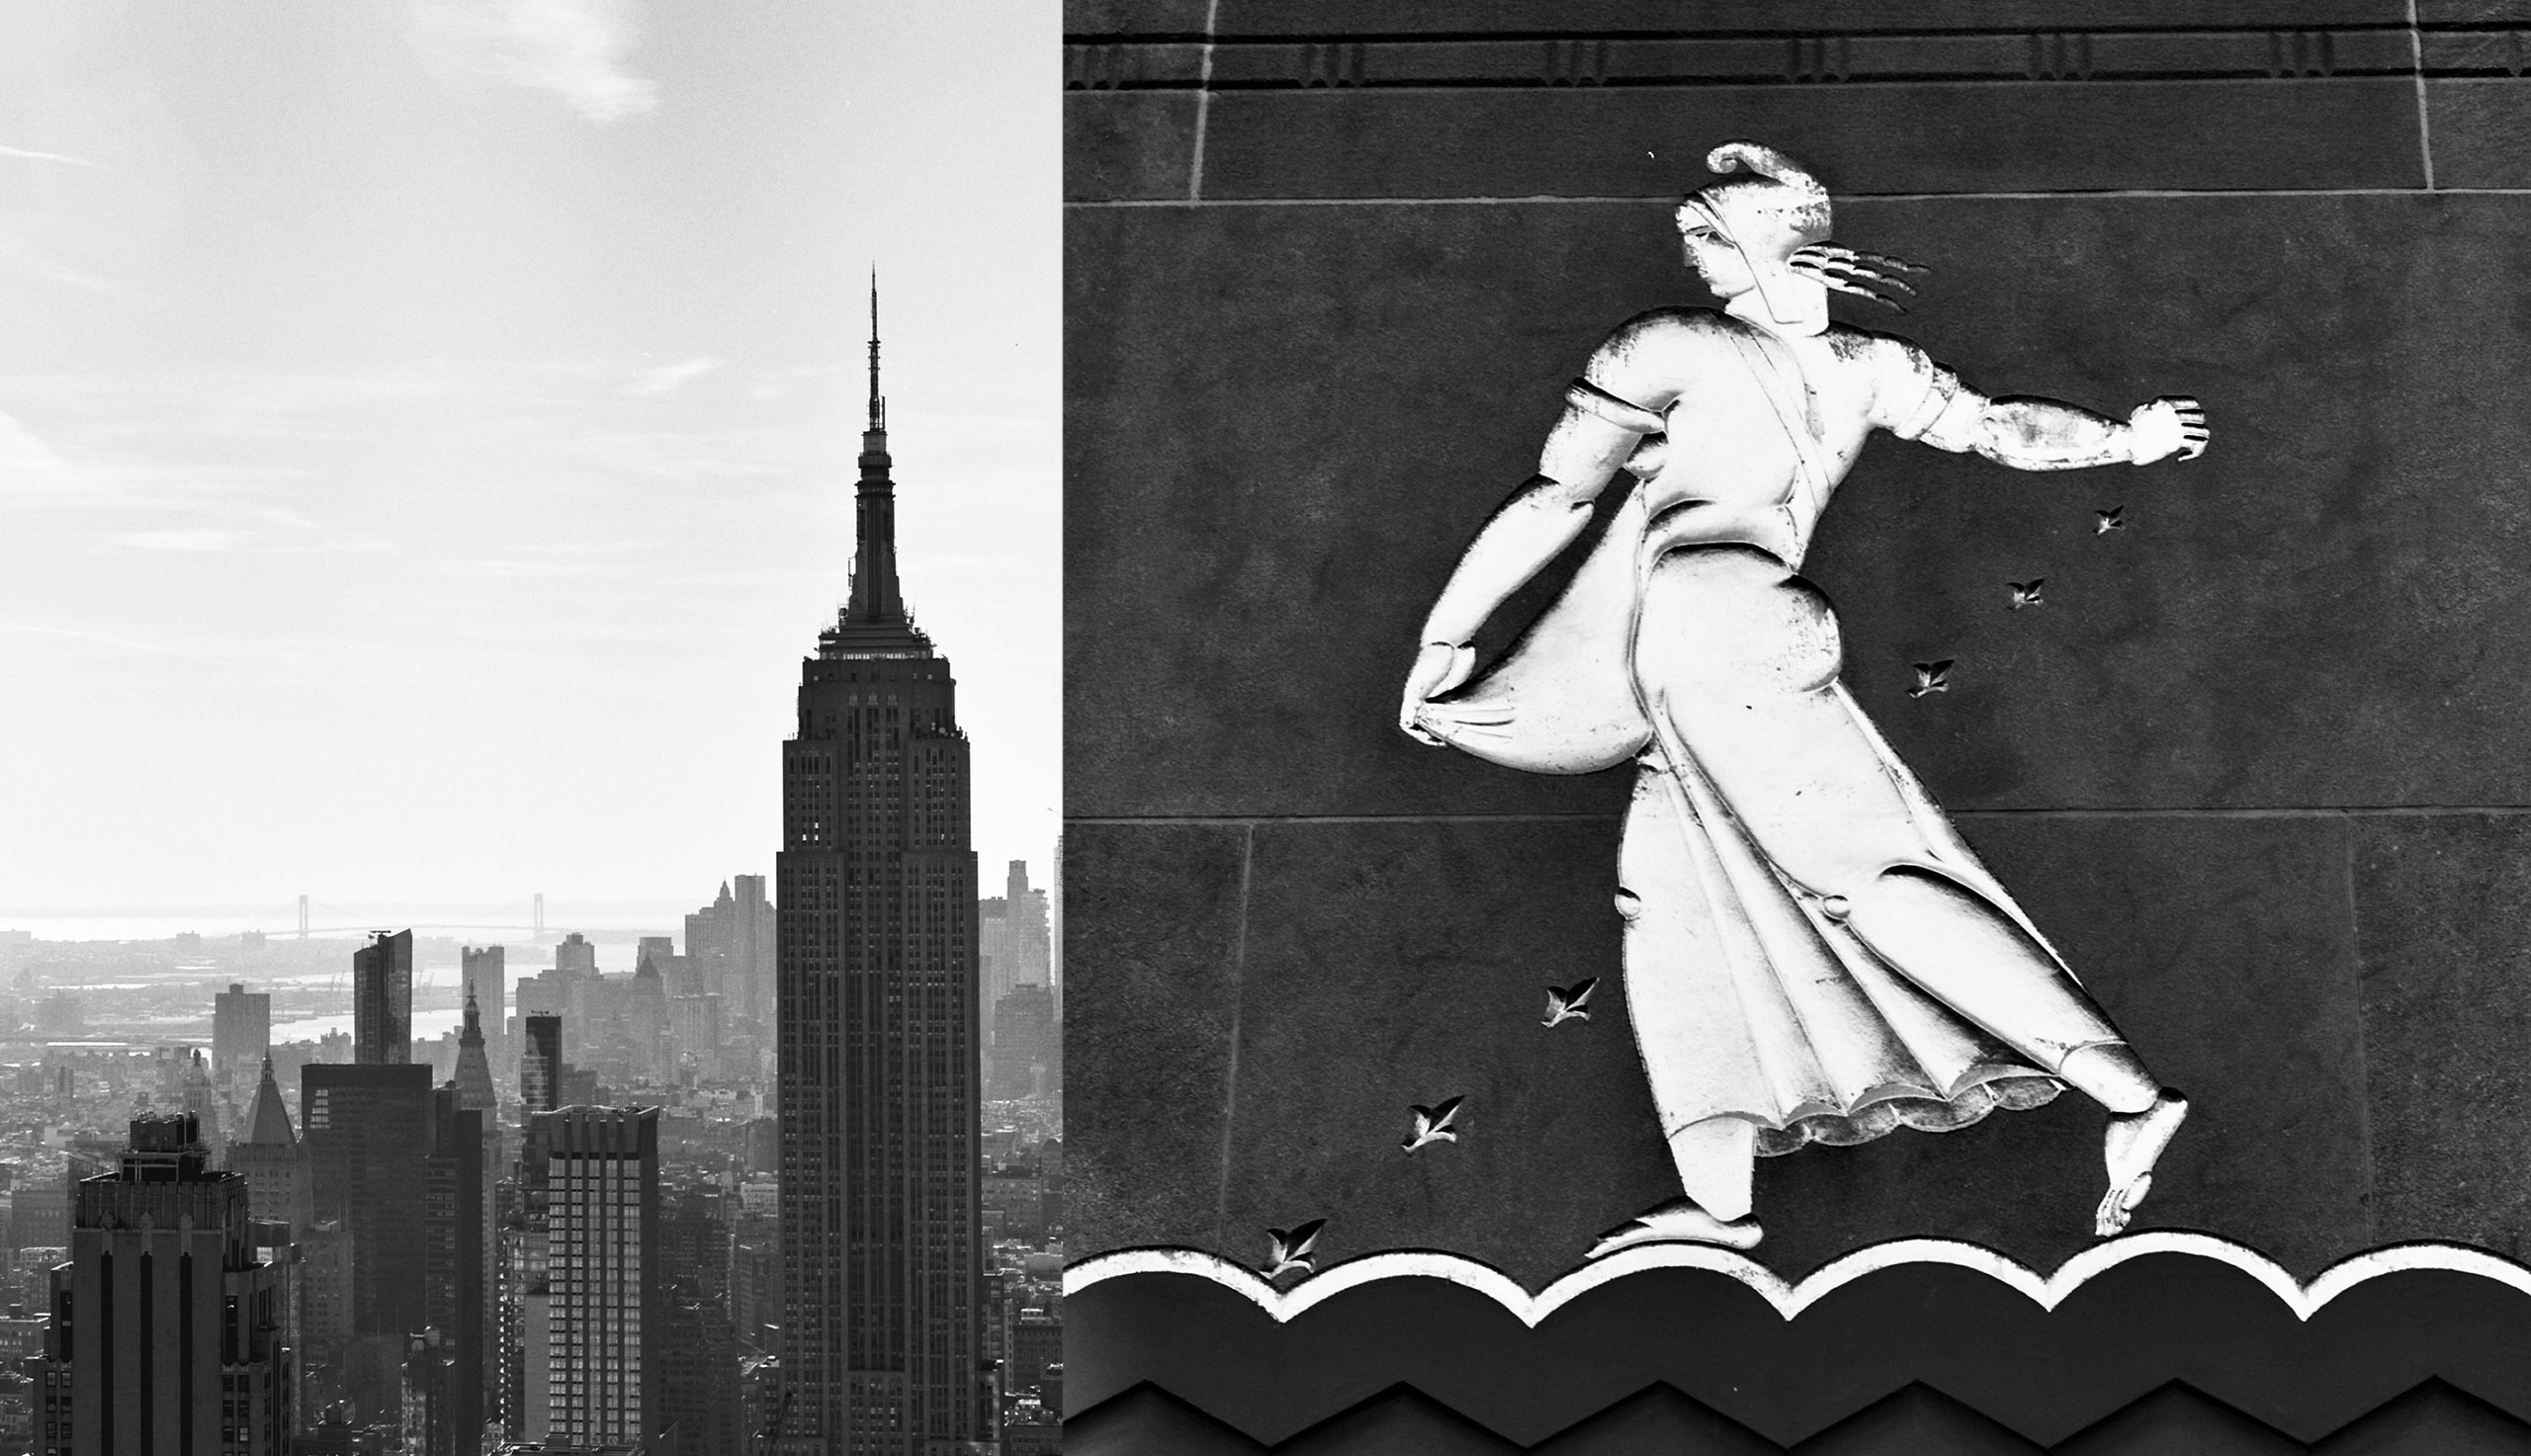 Left: The Empire State Building. Right: an Art Deco relief at Rockefeller Center